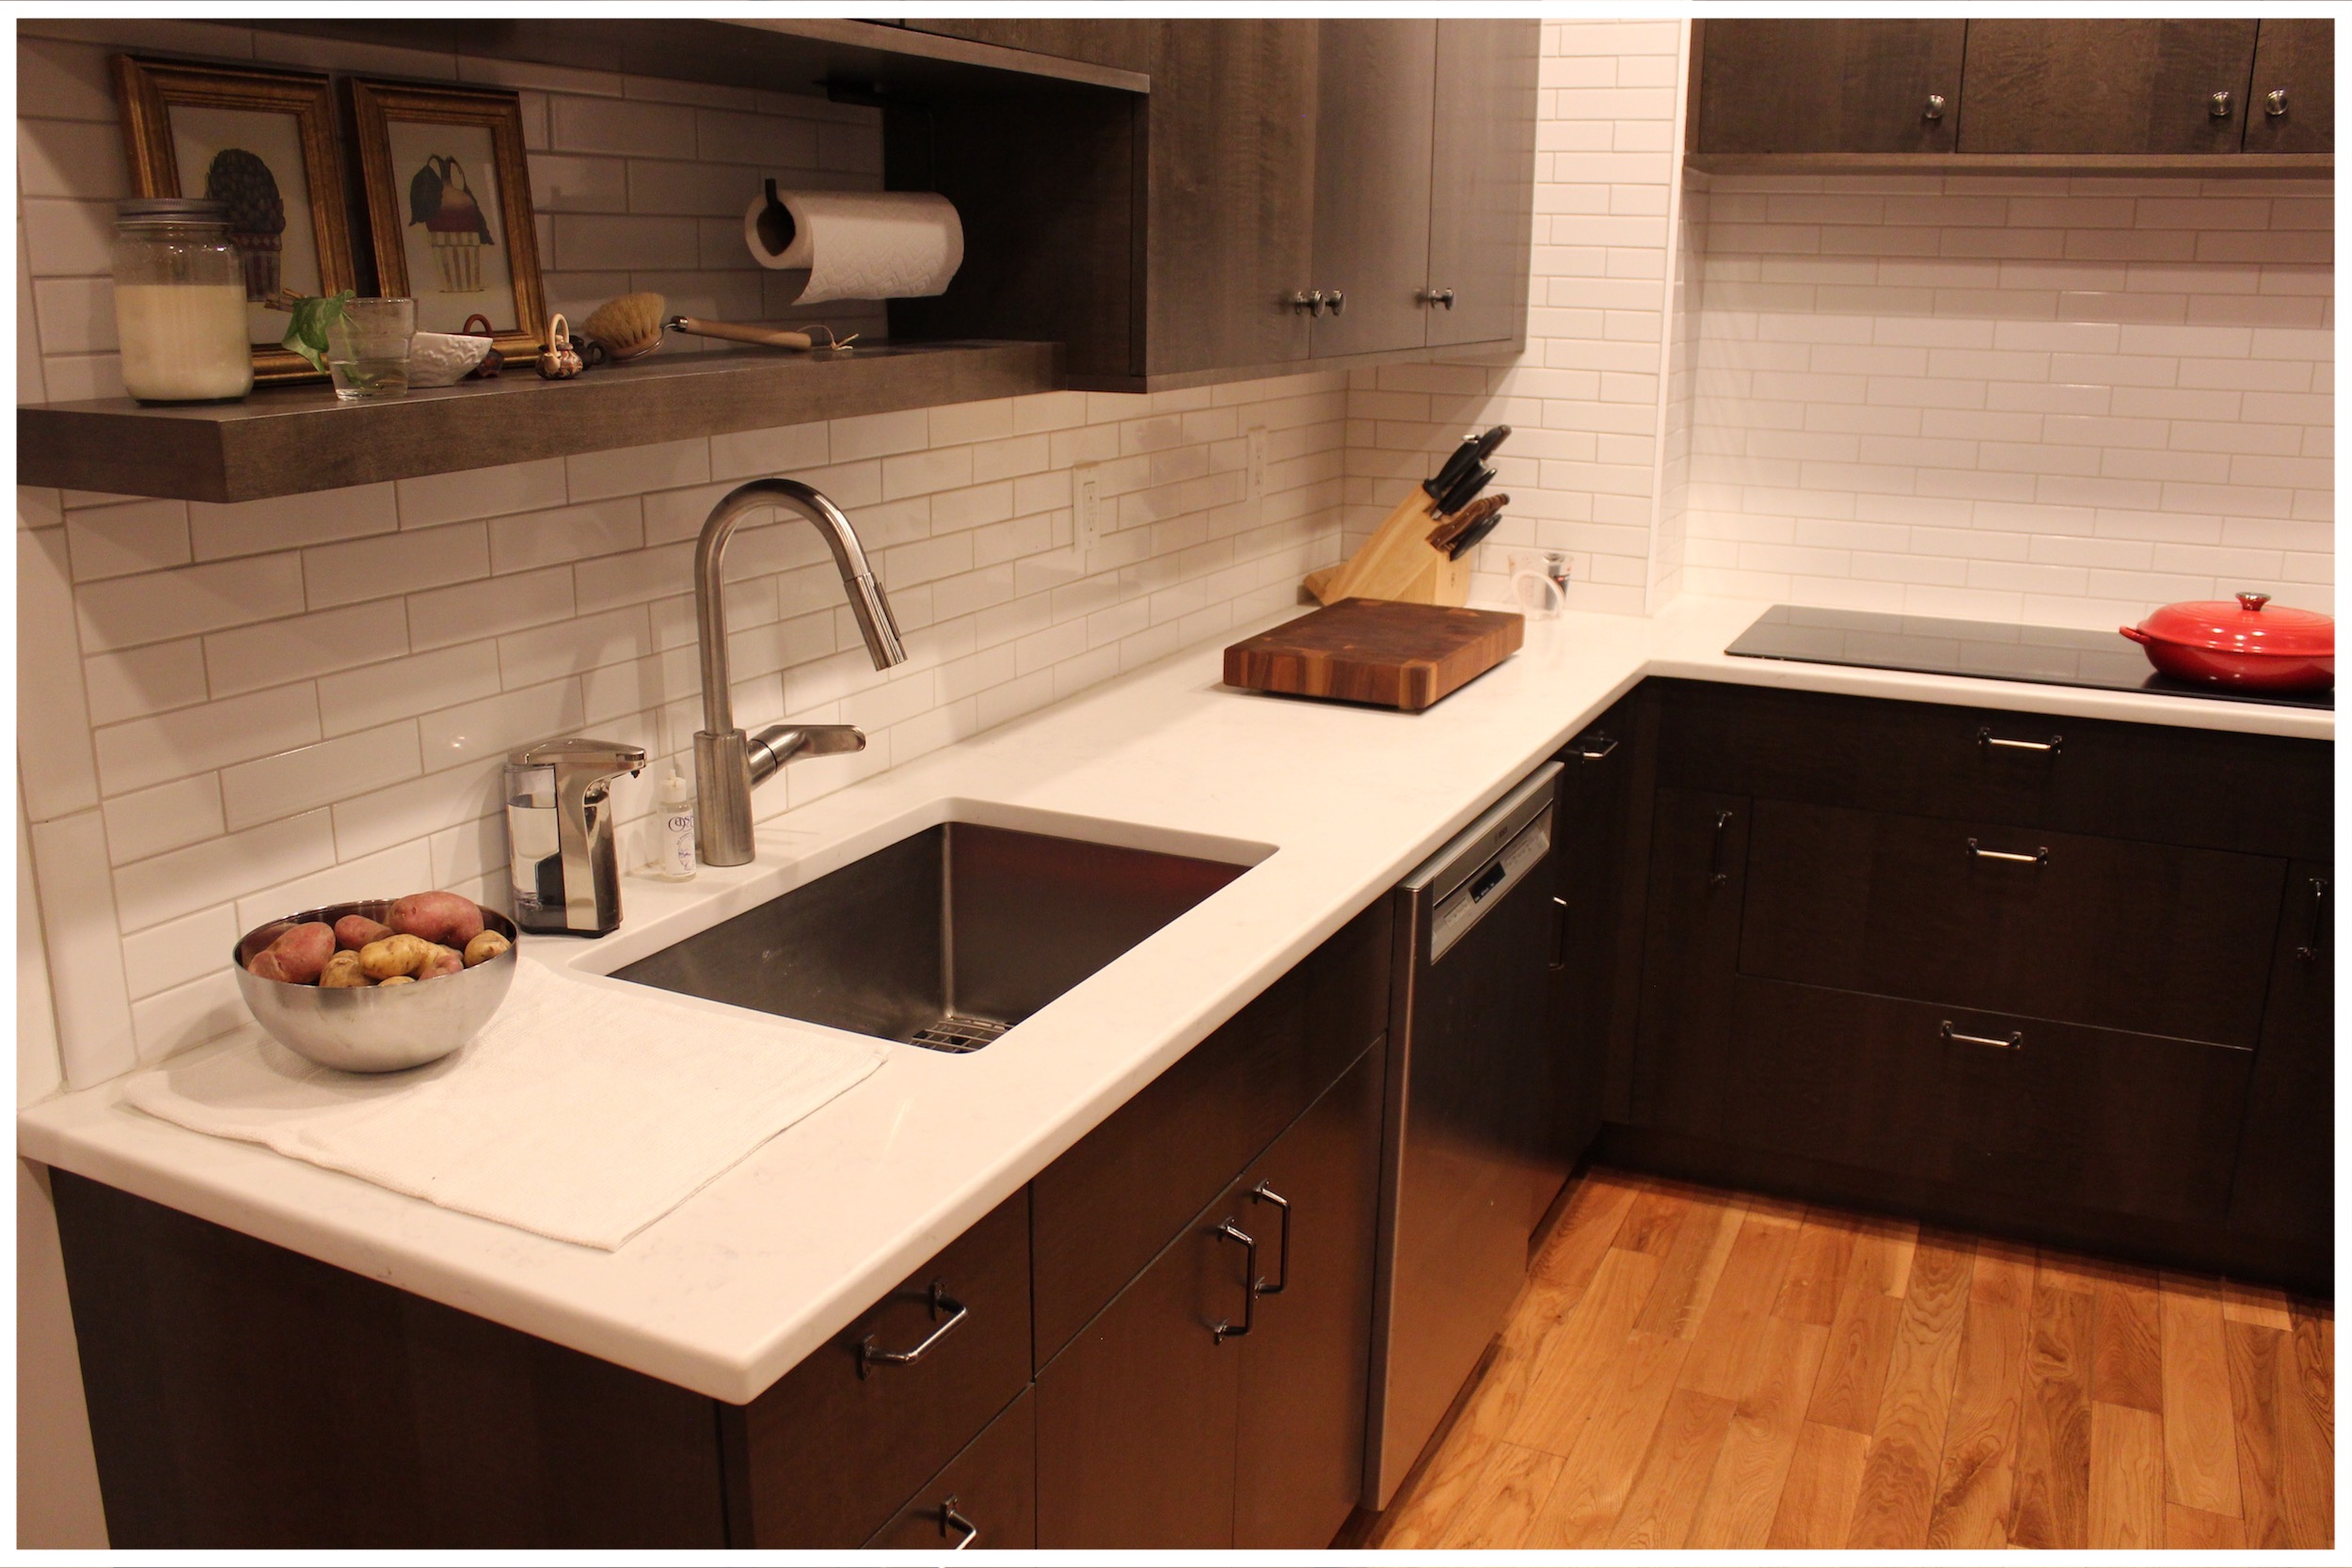 3_KitchenVisions-Modern-Kitchen-Boston.jpg